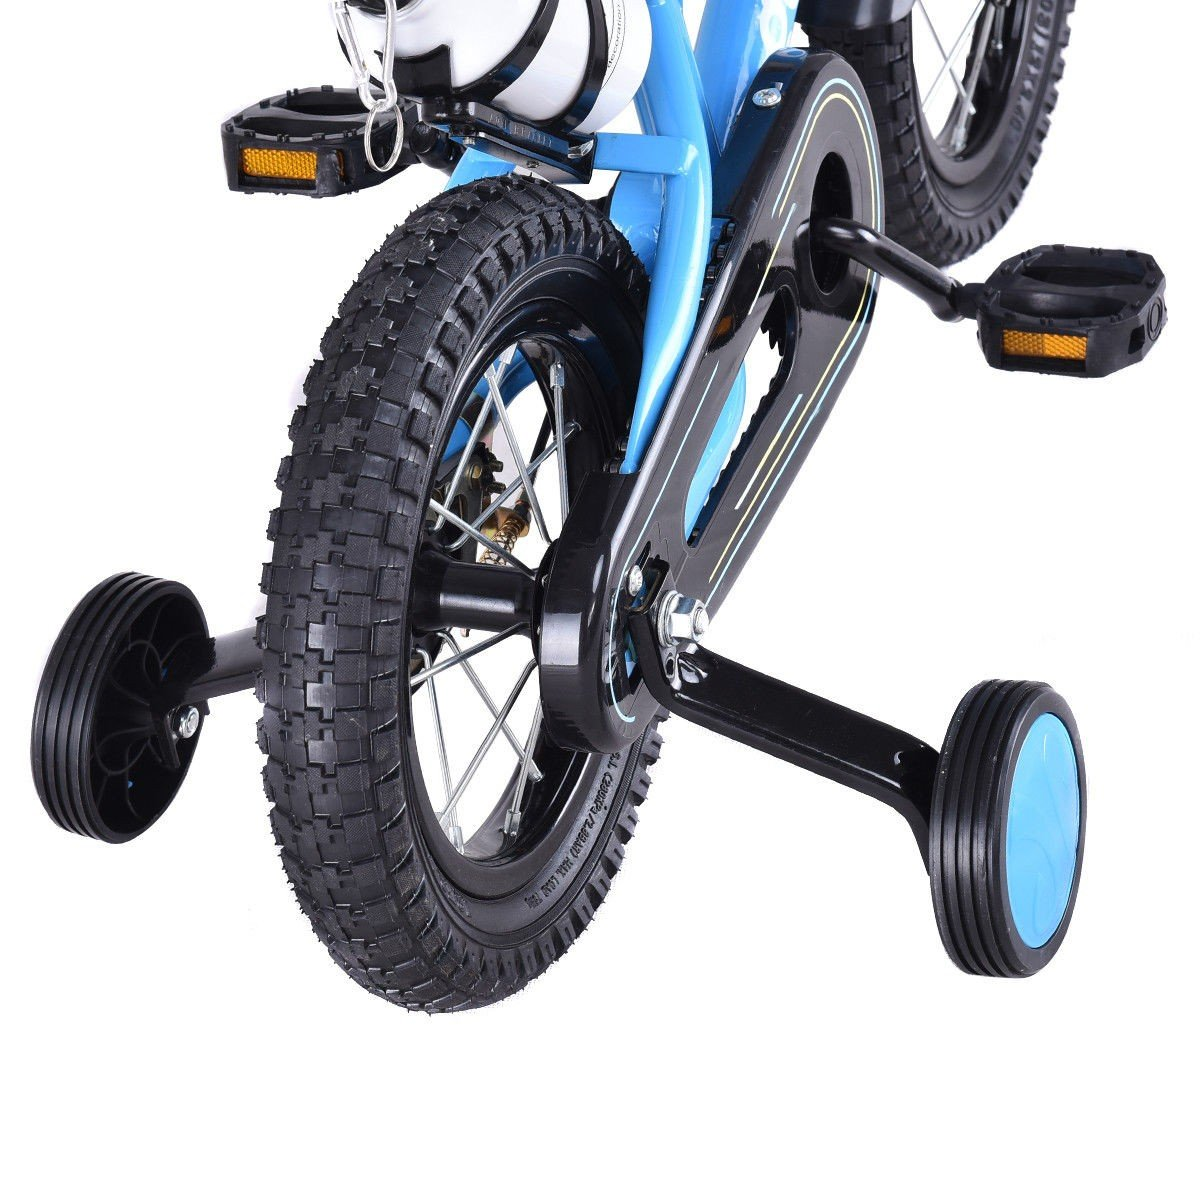 MD Group Kids Bicycle 20'' Adjustable Freestyle Boys & Girls Blue Metal w/ Training Wheels by MD Group (Image #6)